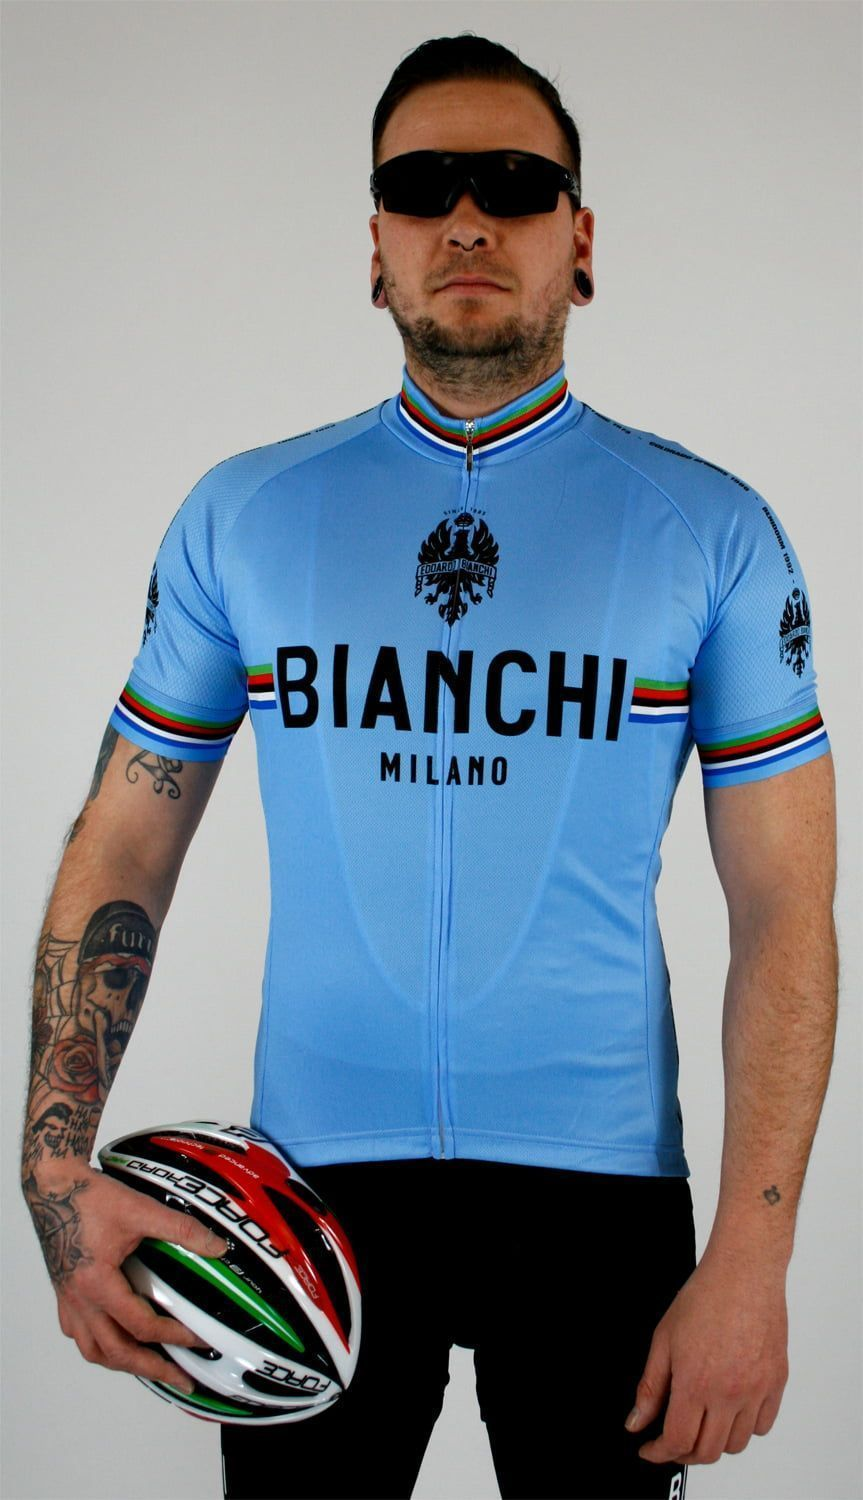 ... short sleeve cycling jersey blue (E19-4180). Previous f72a71364